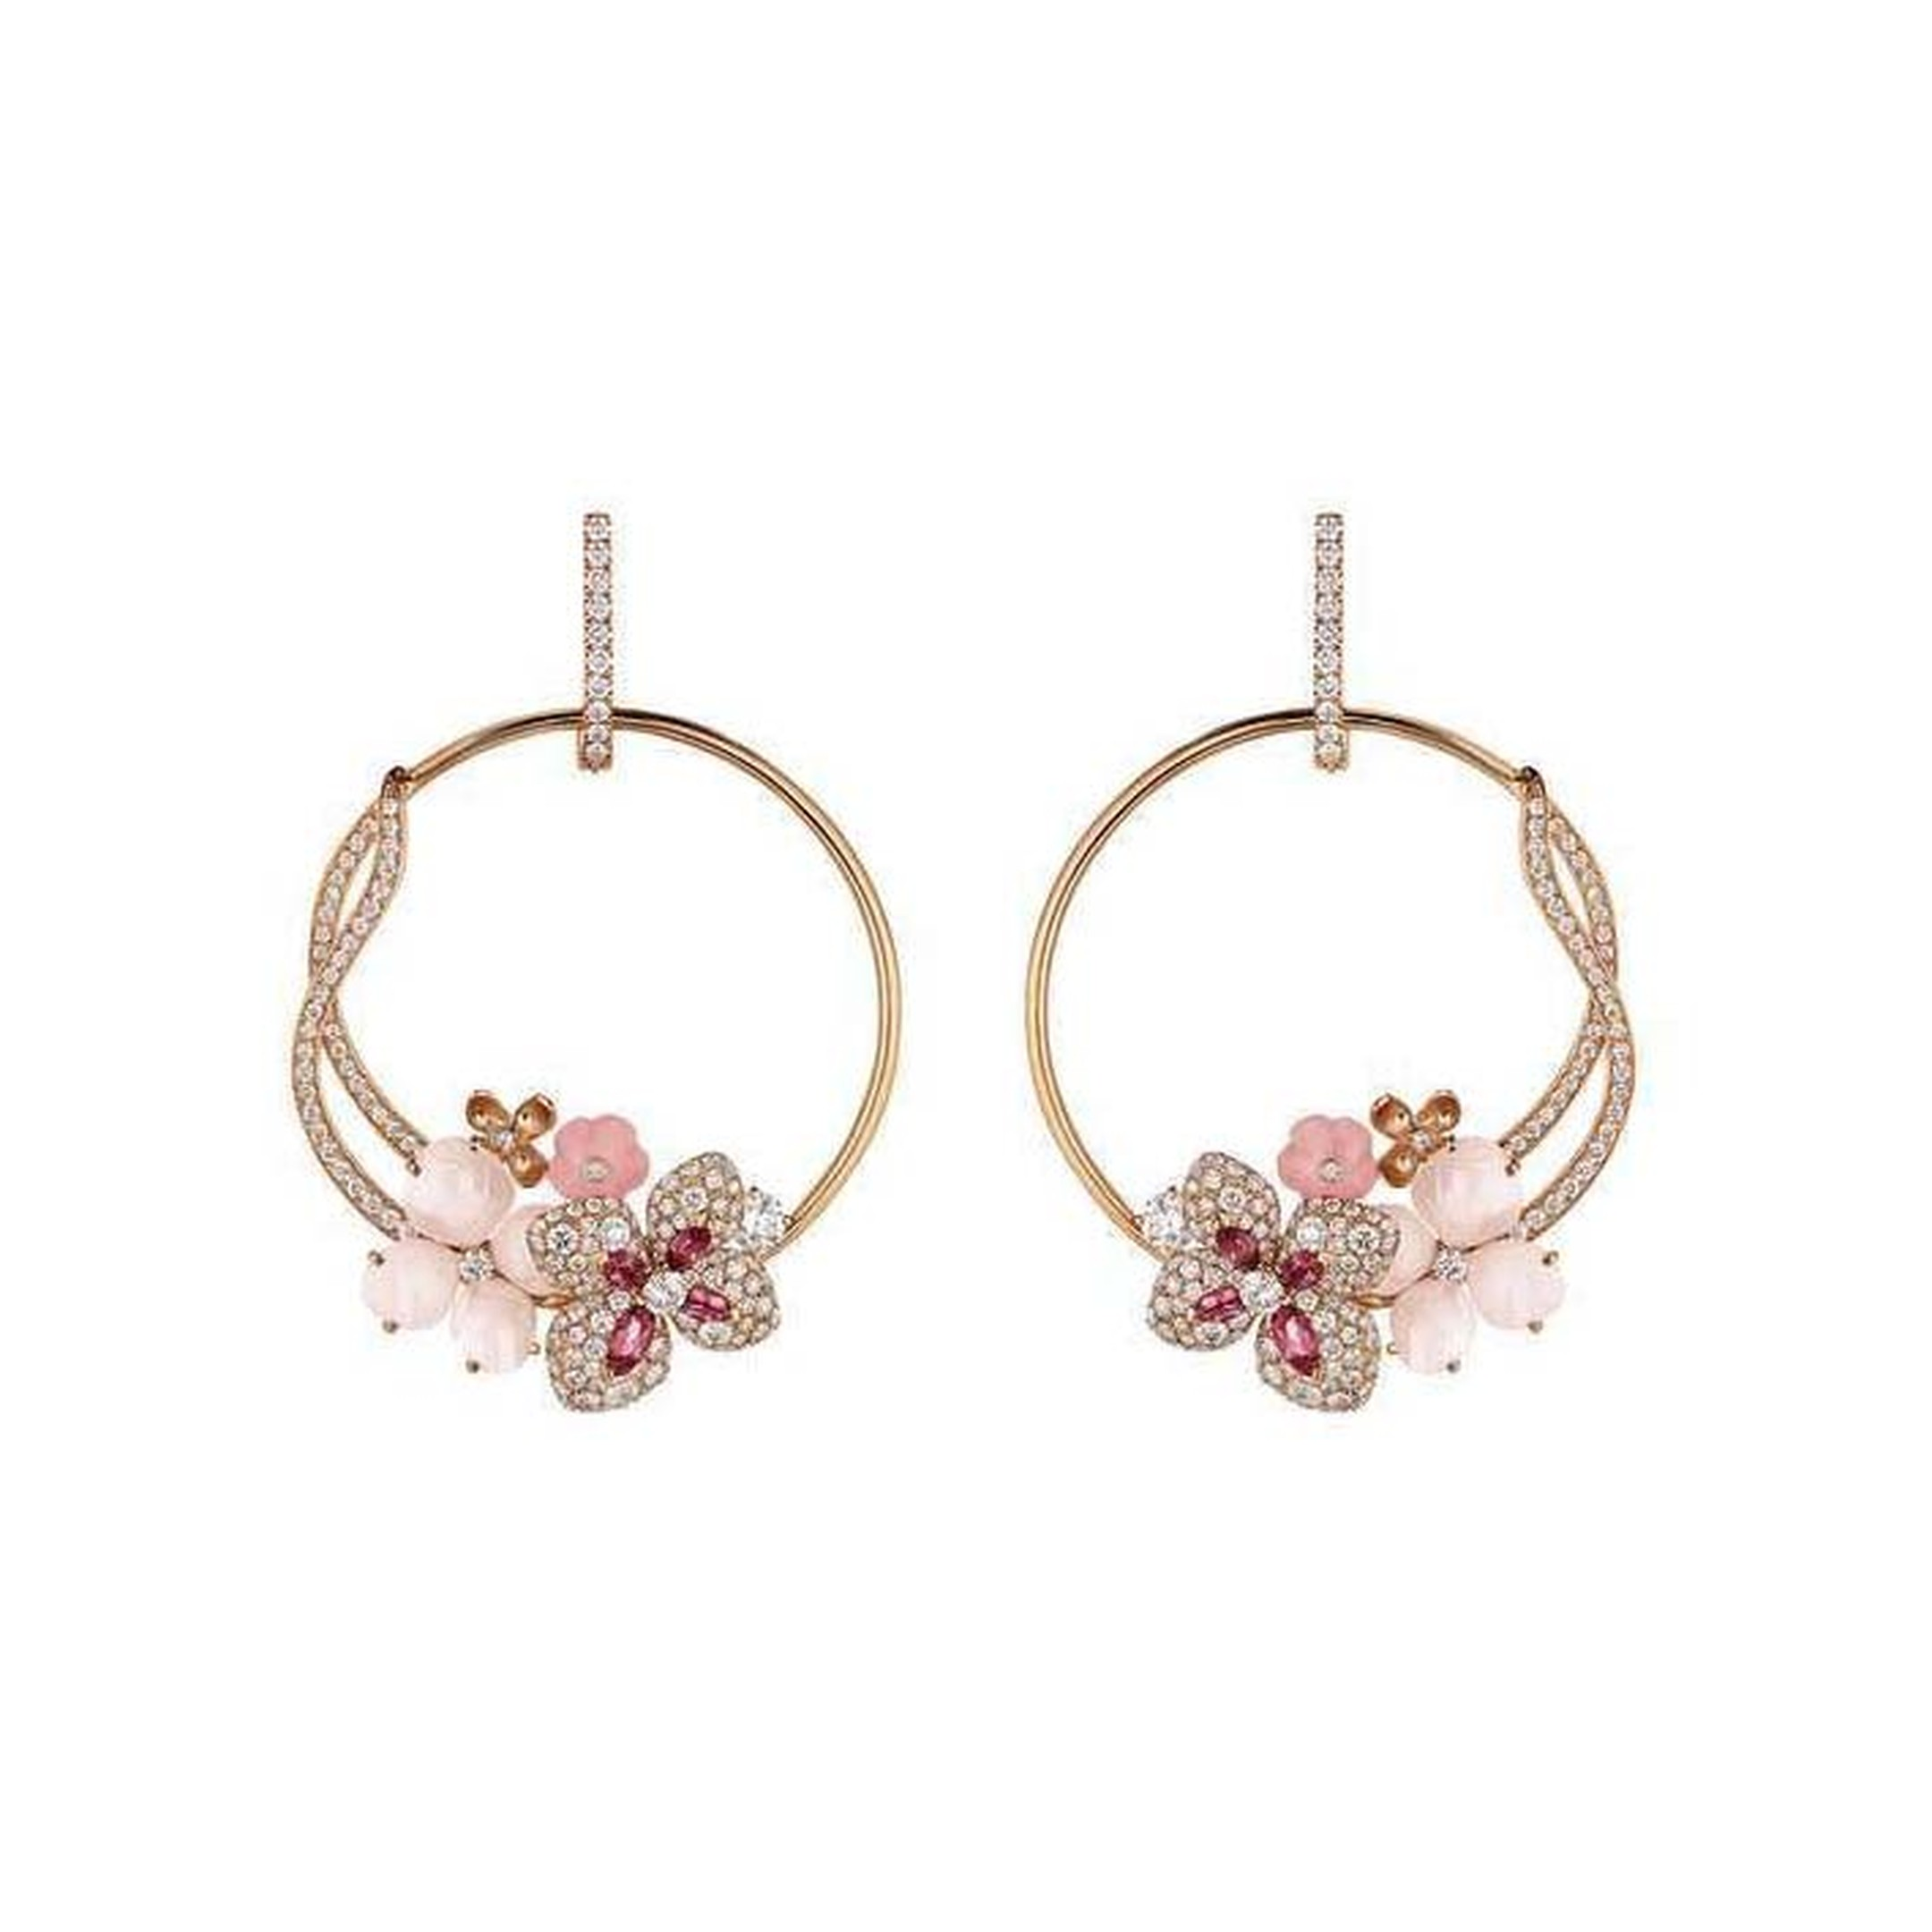 Chaumet Hortensia rose gold earrings set with angel-skin coral, pink opal, pink tourmalines and diamonds.